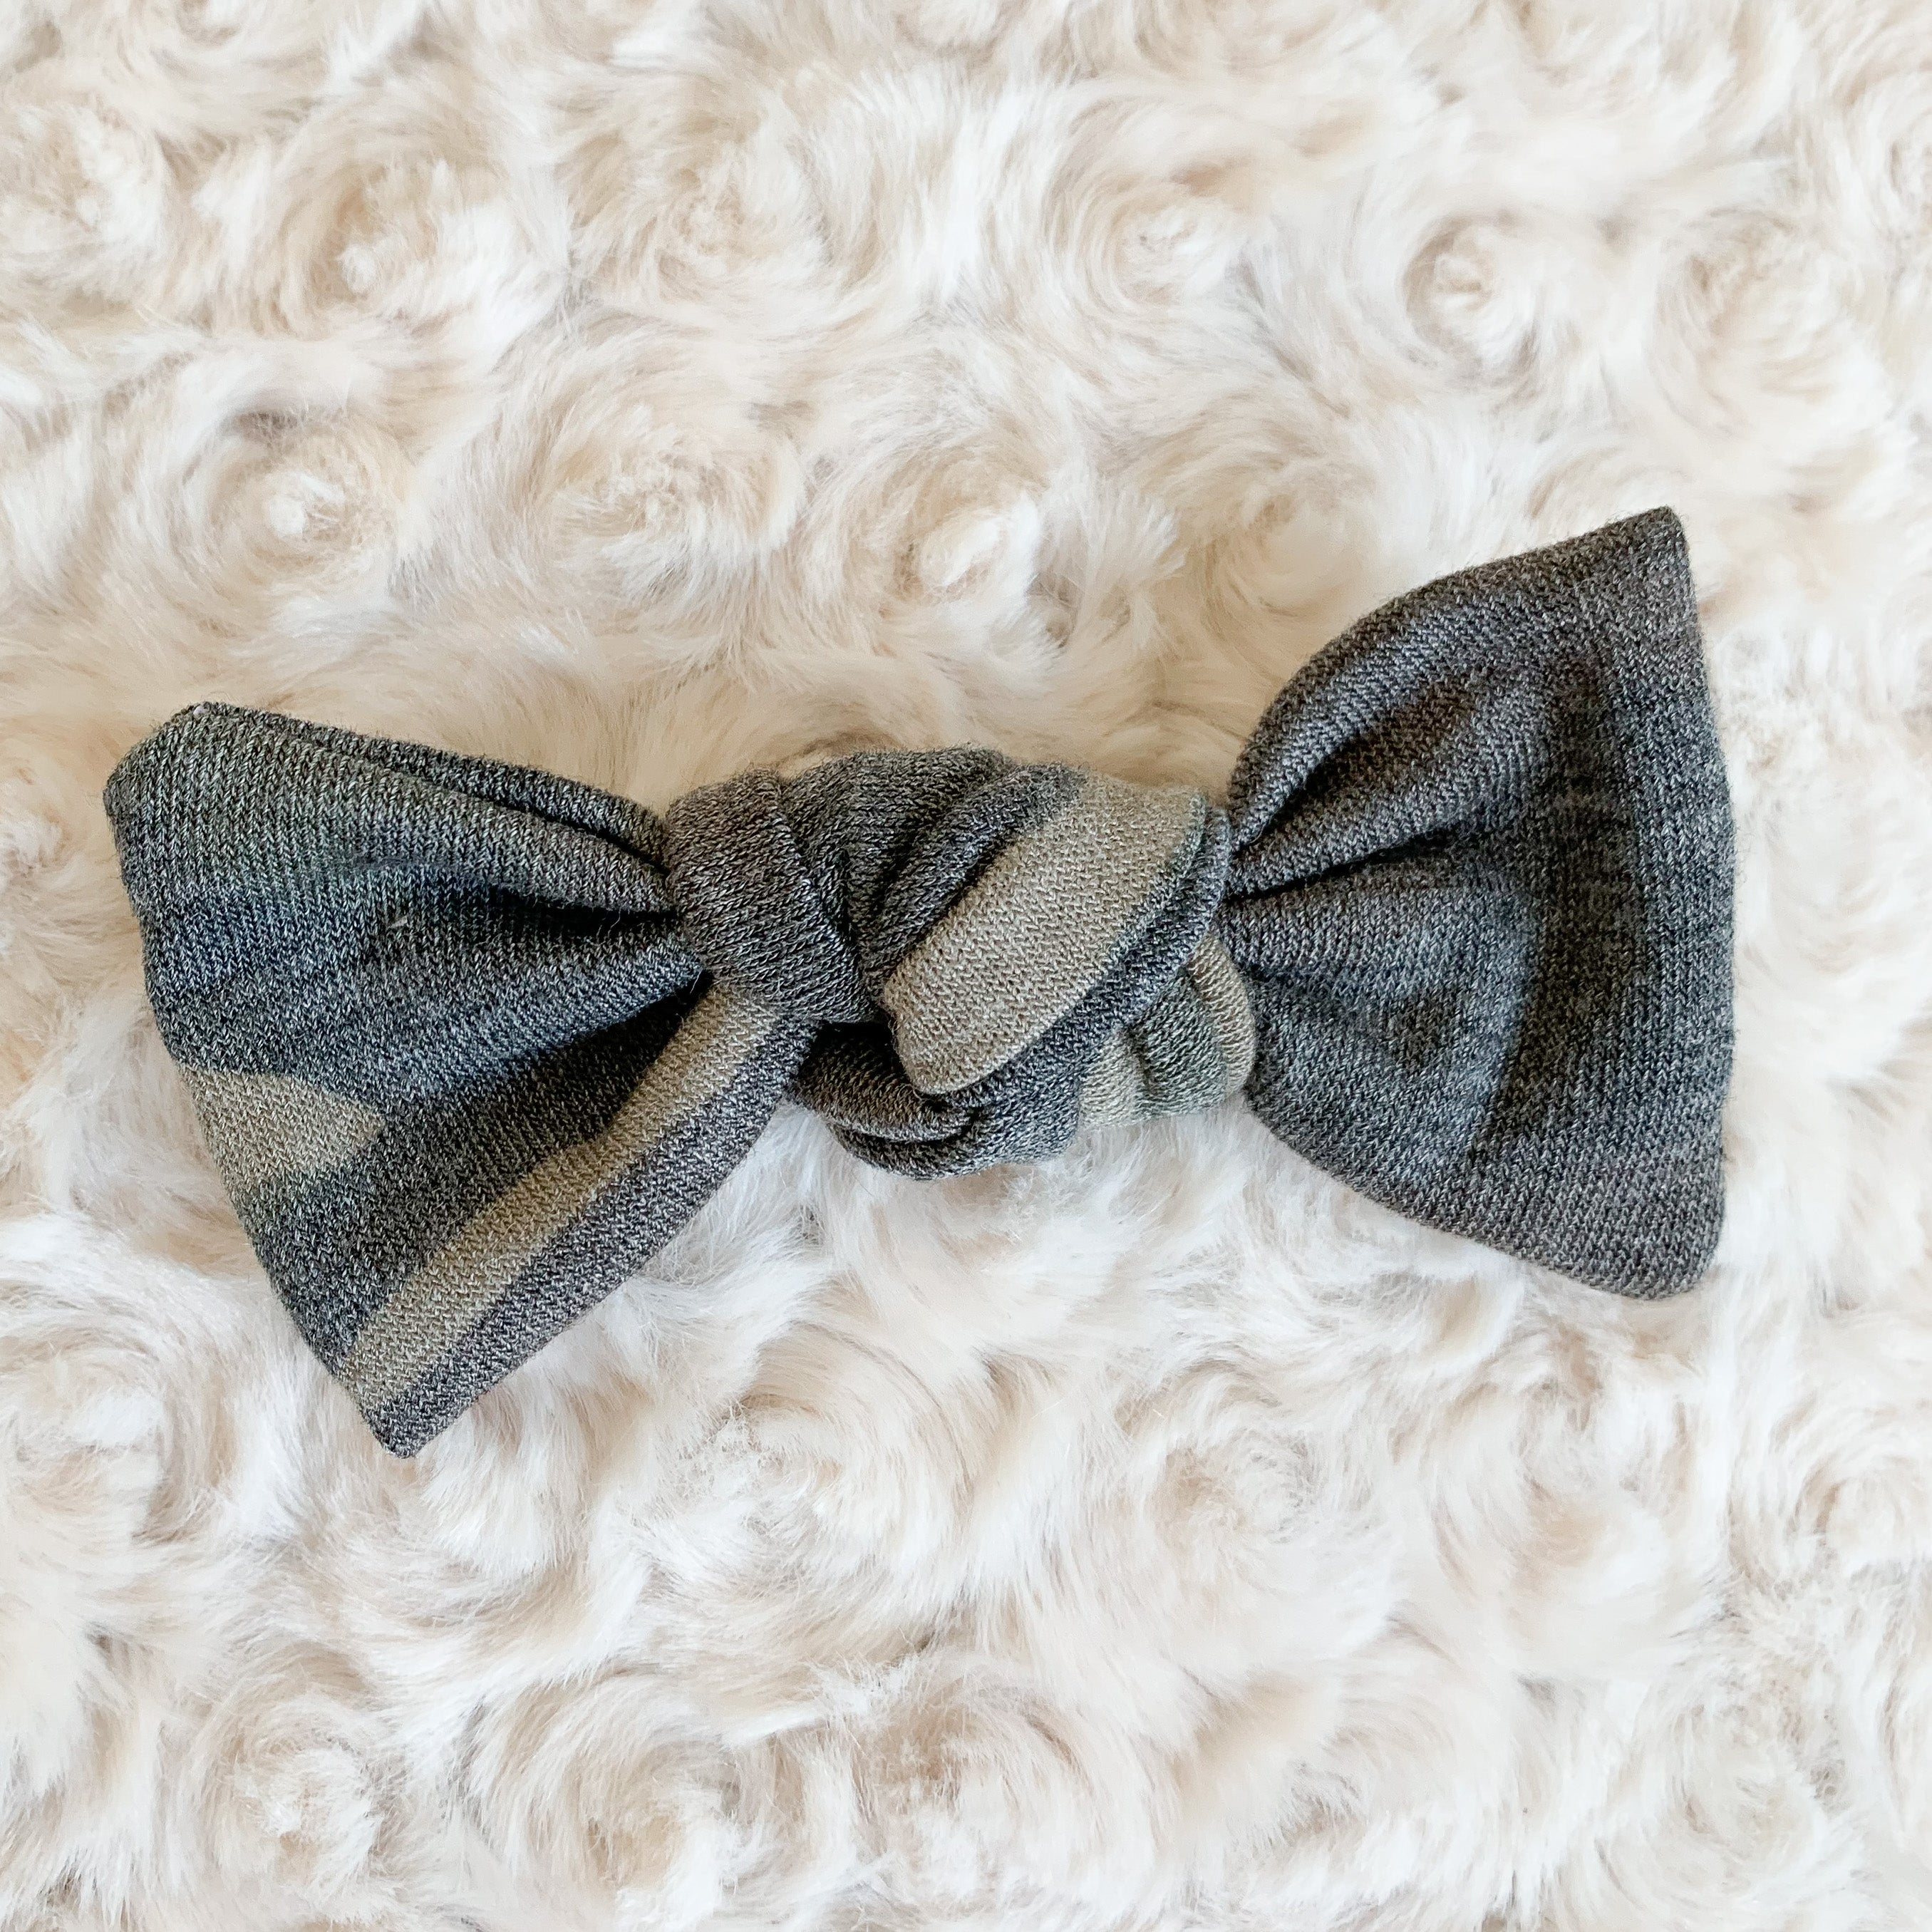 Bow: Alligator Clip Muted Camo